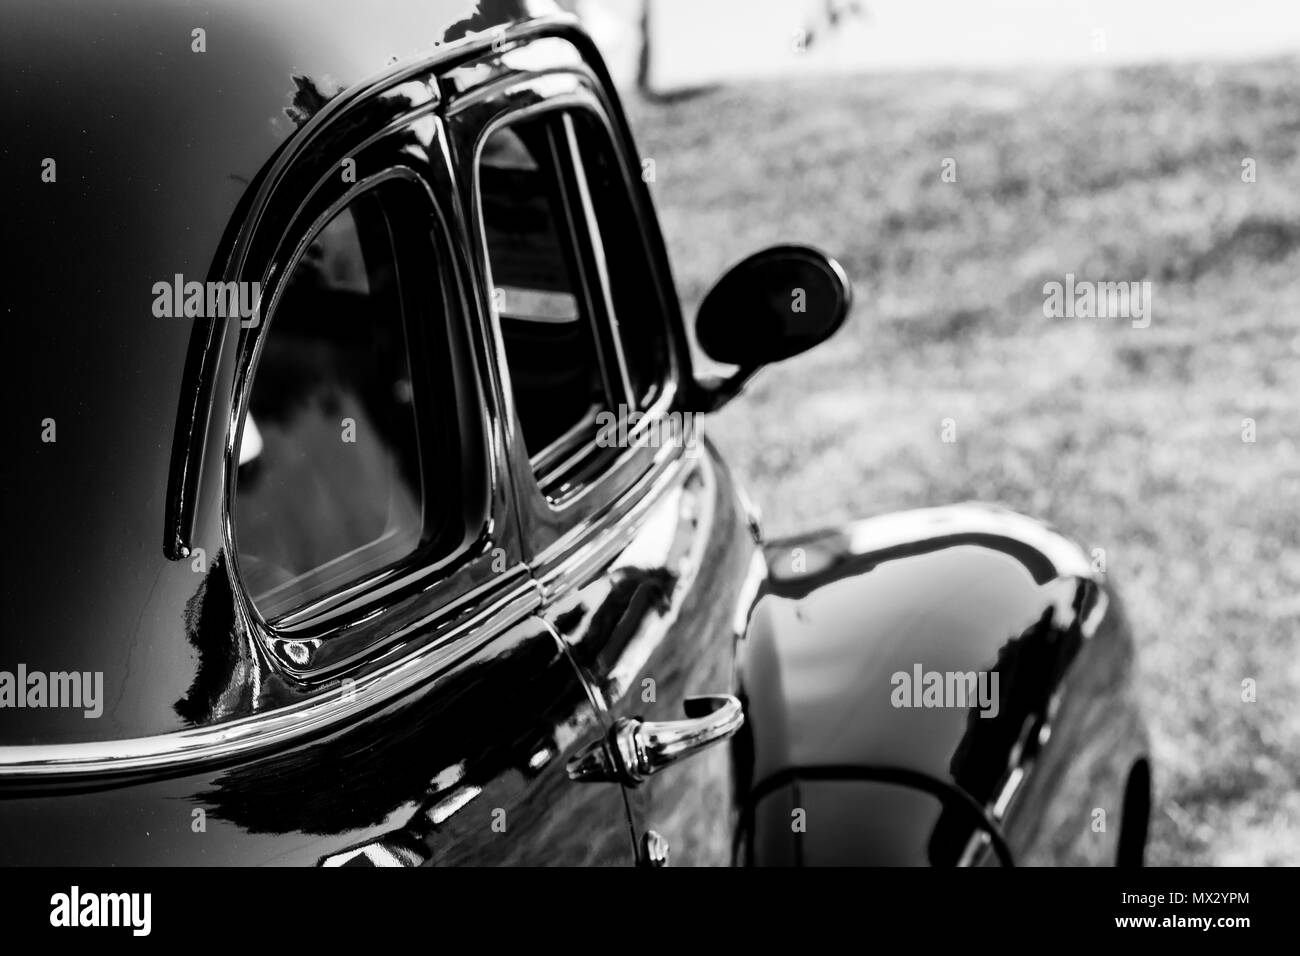 Vintage car featuring different car parts Stock Photo: 188150444 - Alamy